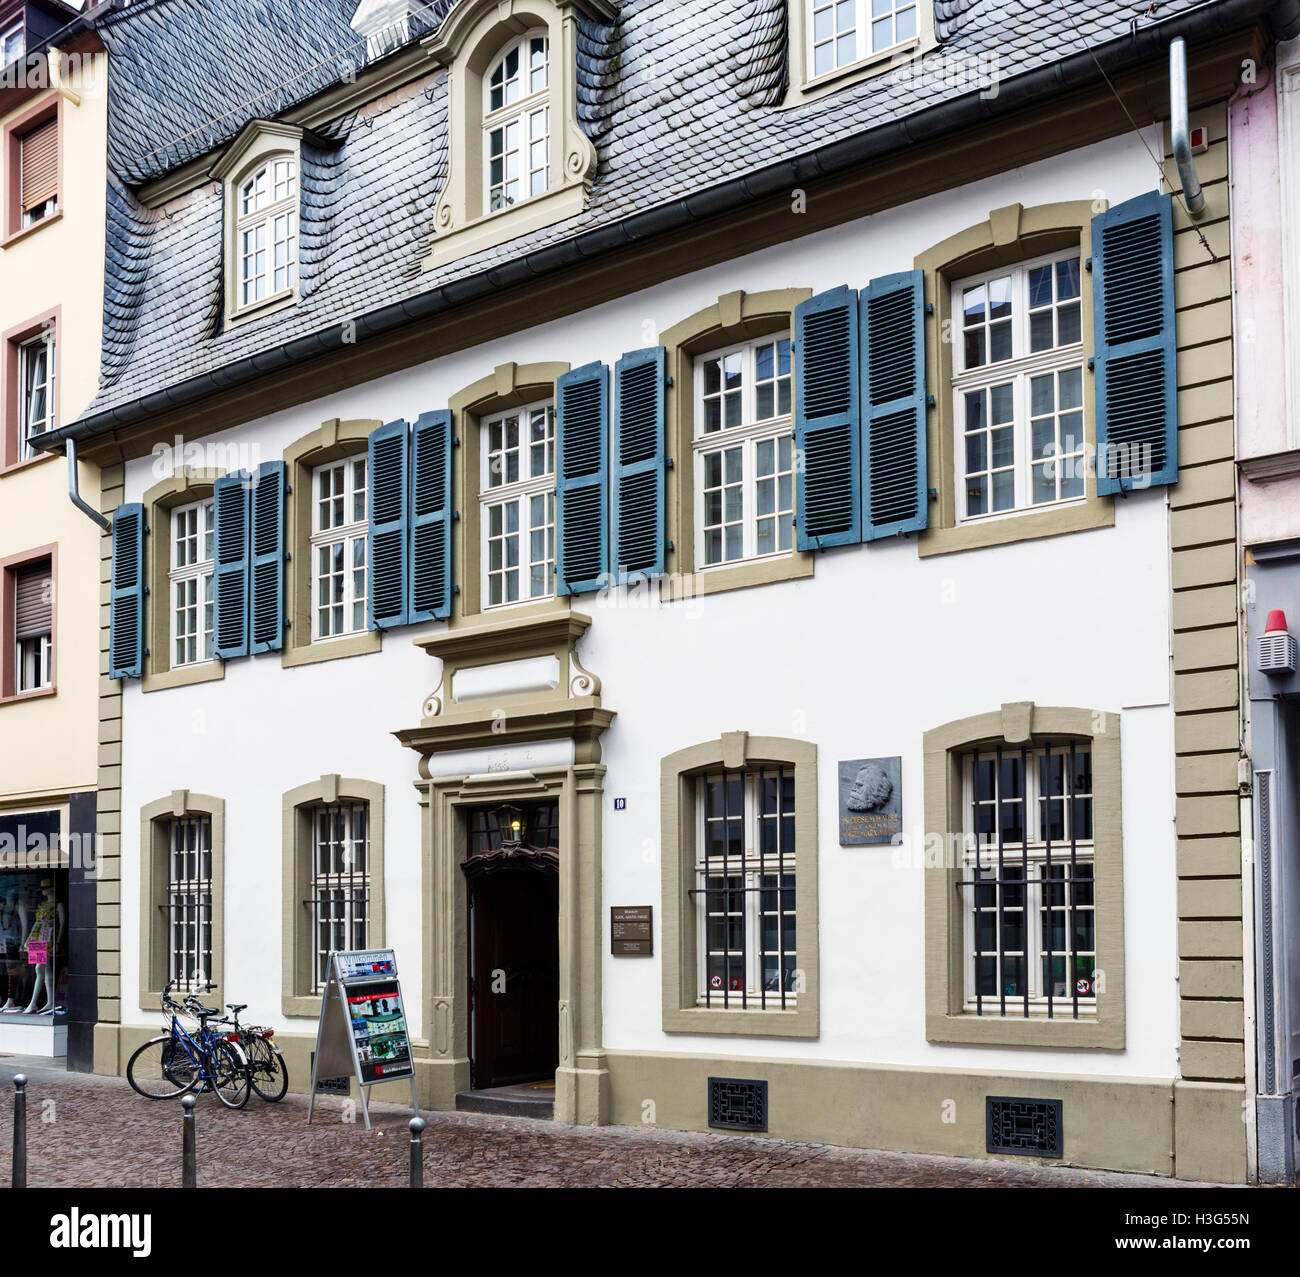 The Karl Marx House, where Karl Marx was born and grew up, Altstadt, Trier, Rhineland-Palatinate, Germany - Stock Image